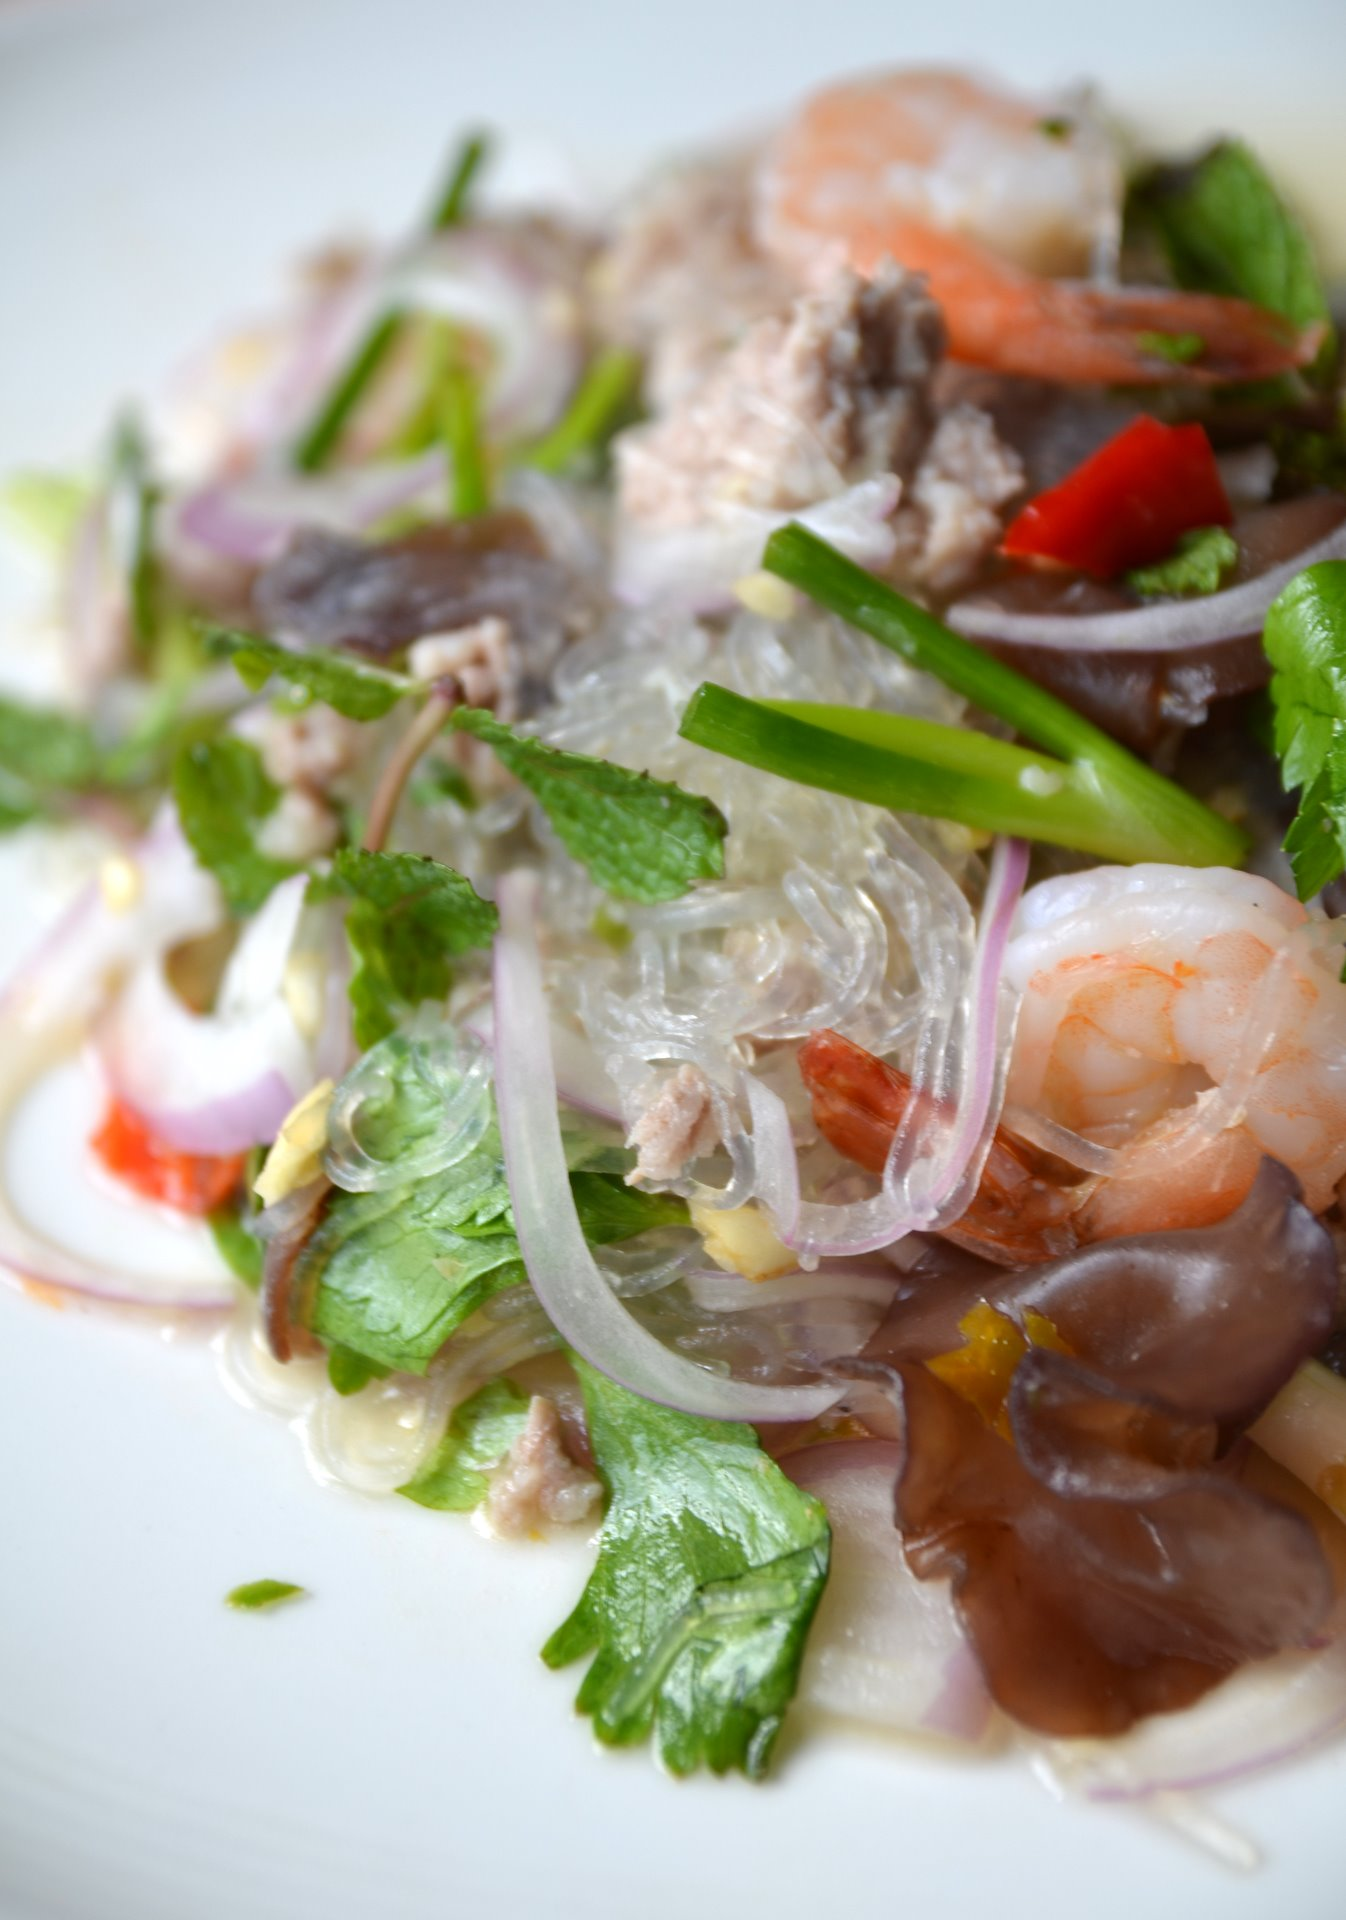 Cuisines With Spicy Food Thai Cuisine Wikipedia